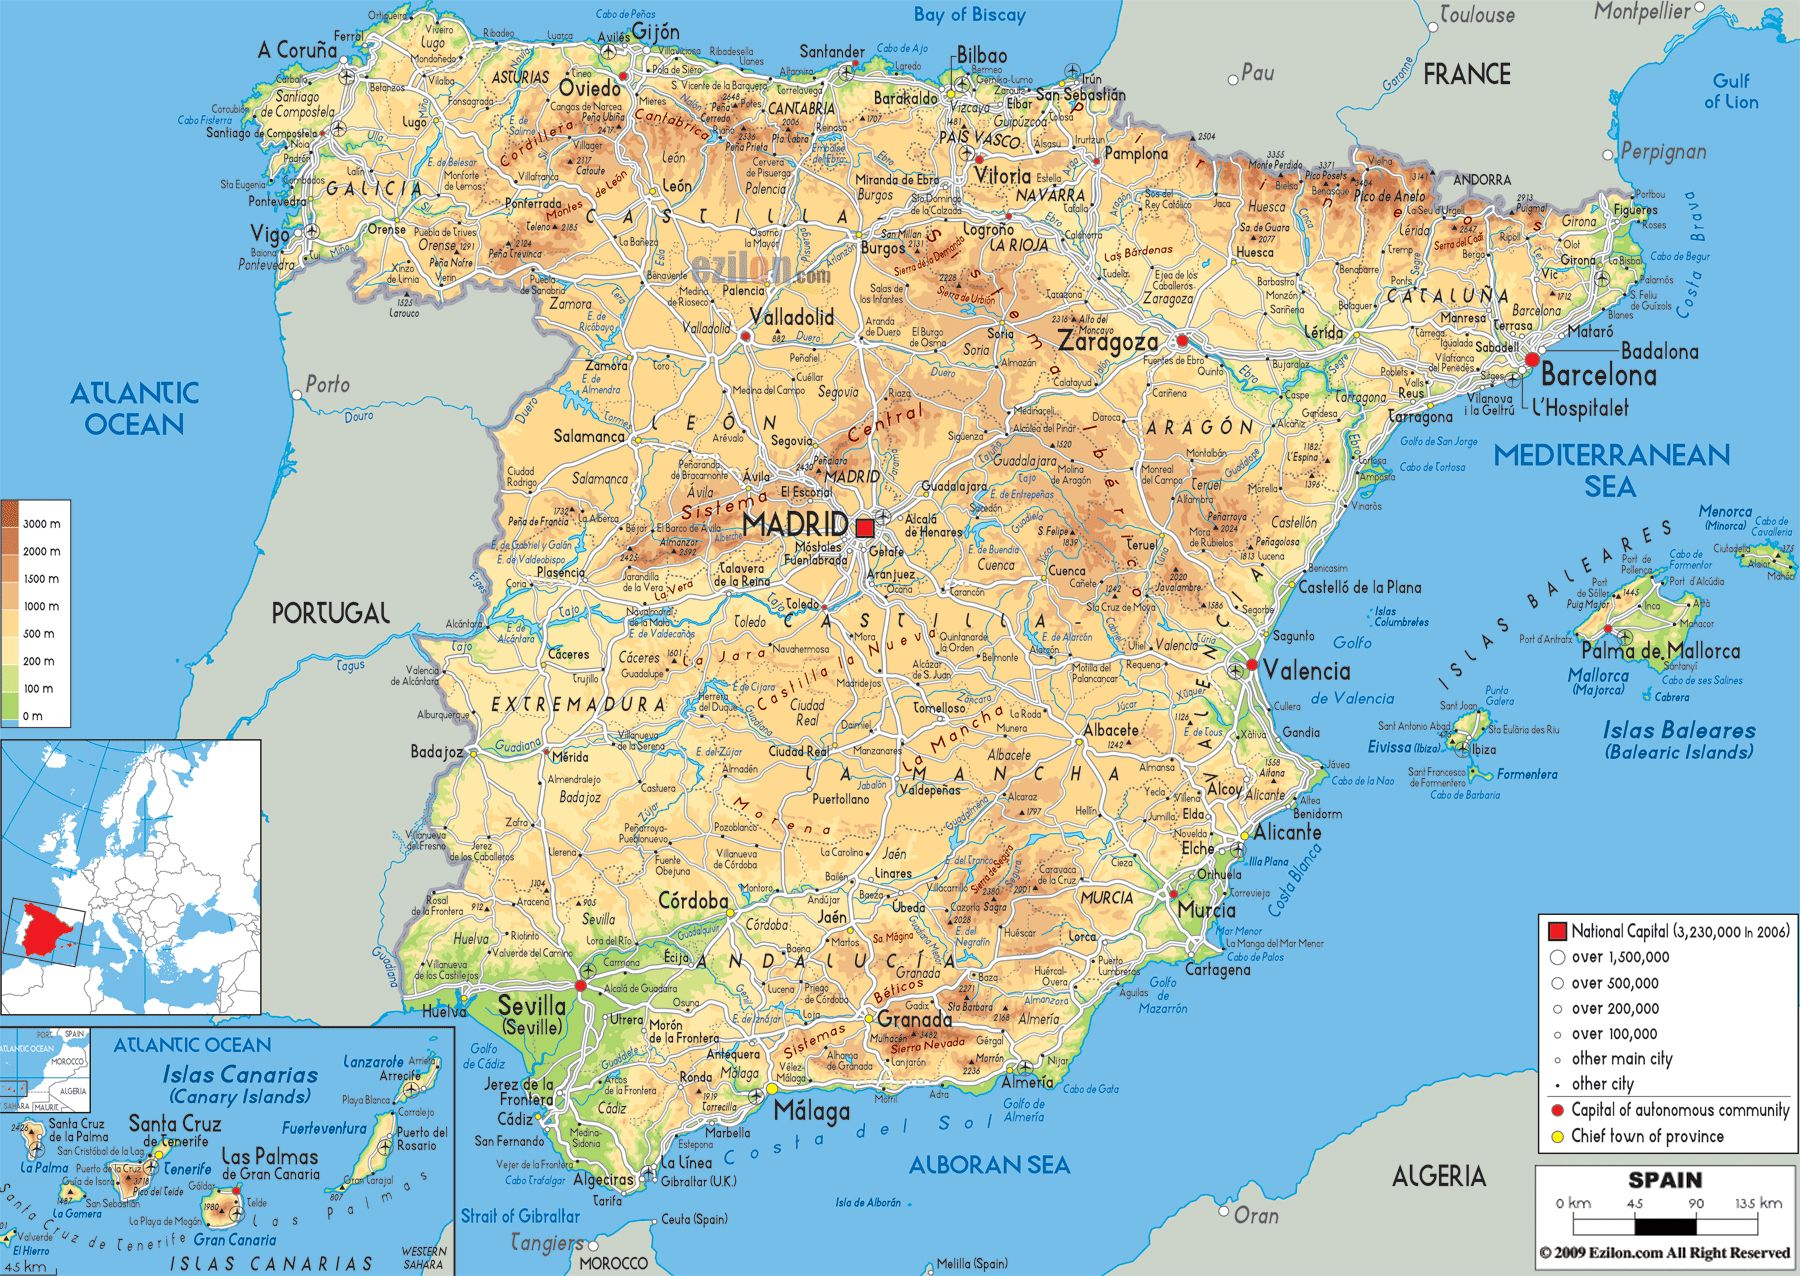 administrative physical and relief map of spain. image from httpwwweziloncommapsimageseuropespainphysical